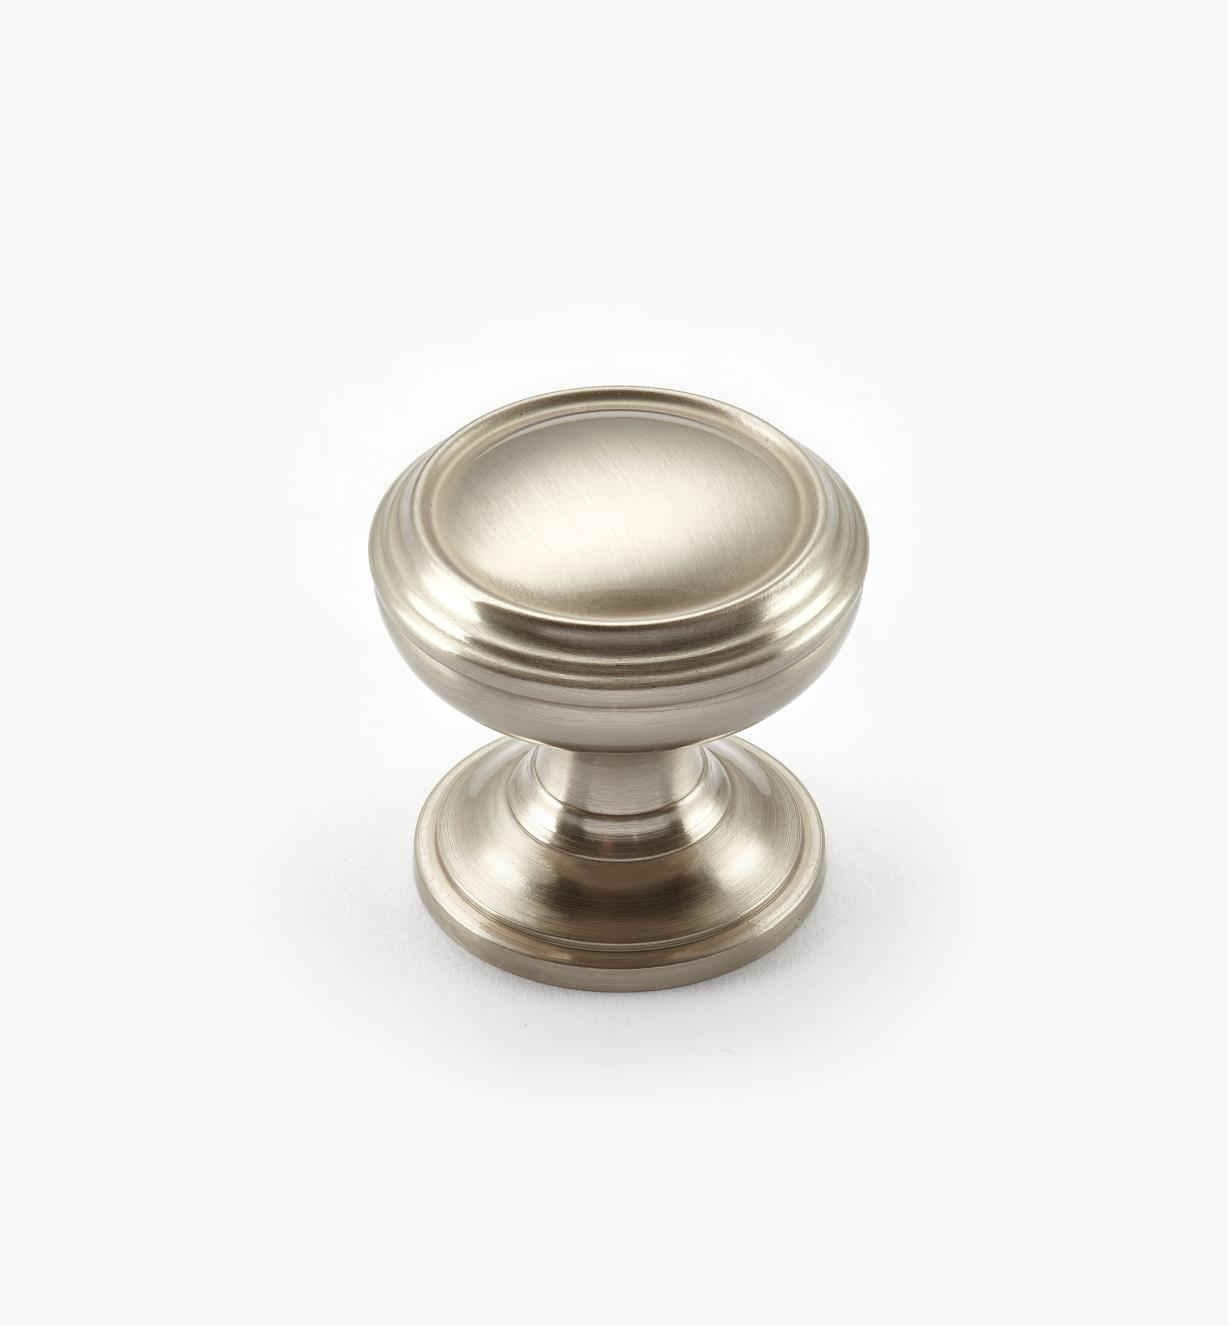 "02A1682 - Revitalize Satin Chrome 1 1/4"" Plain Round Knob, each"